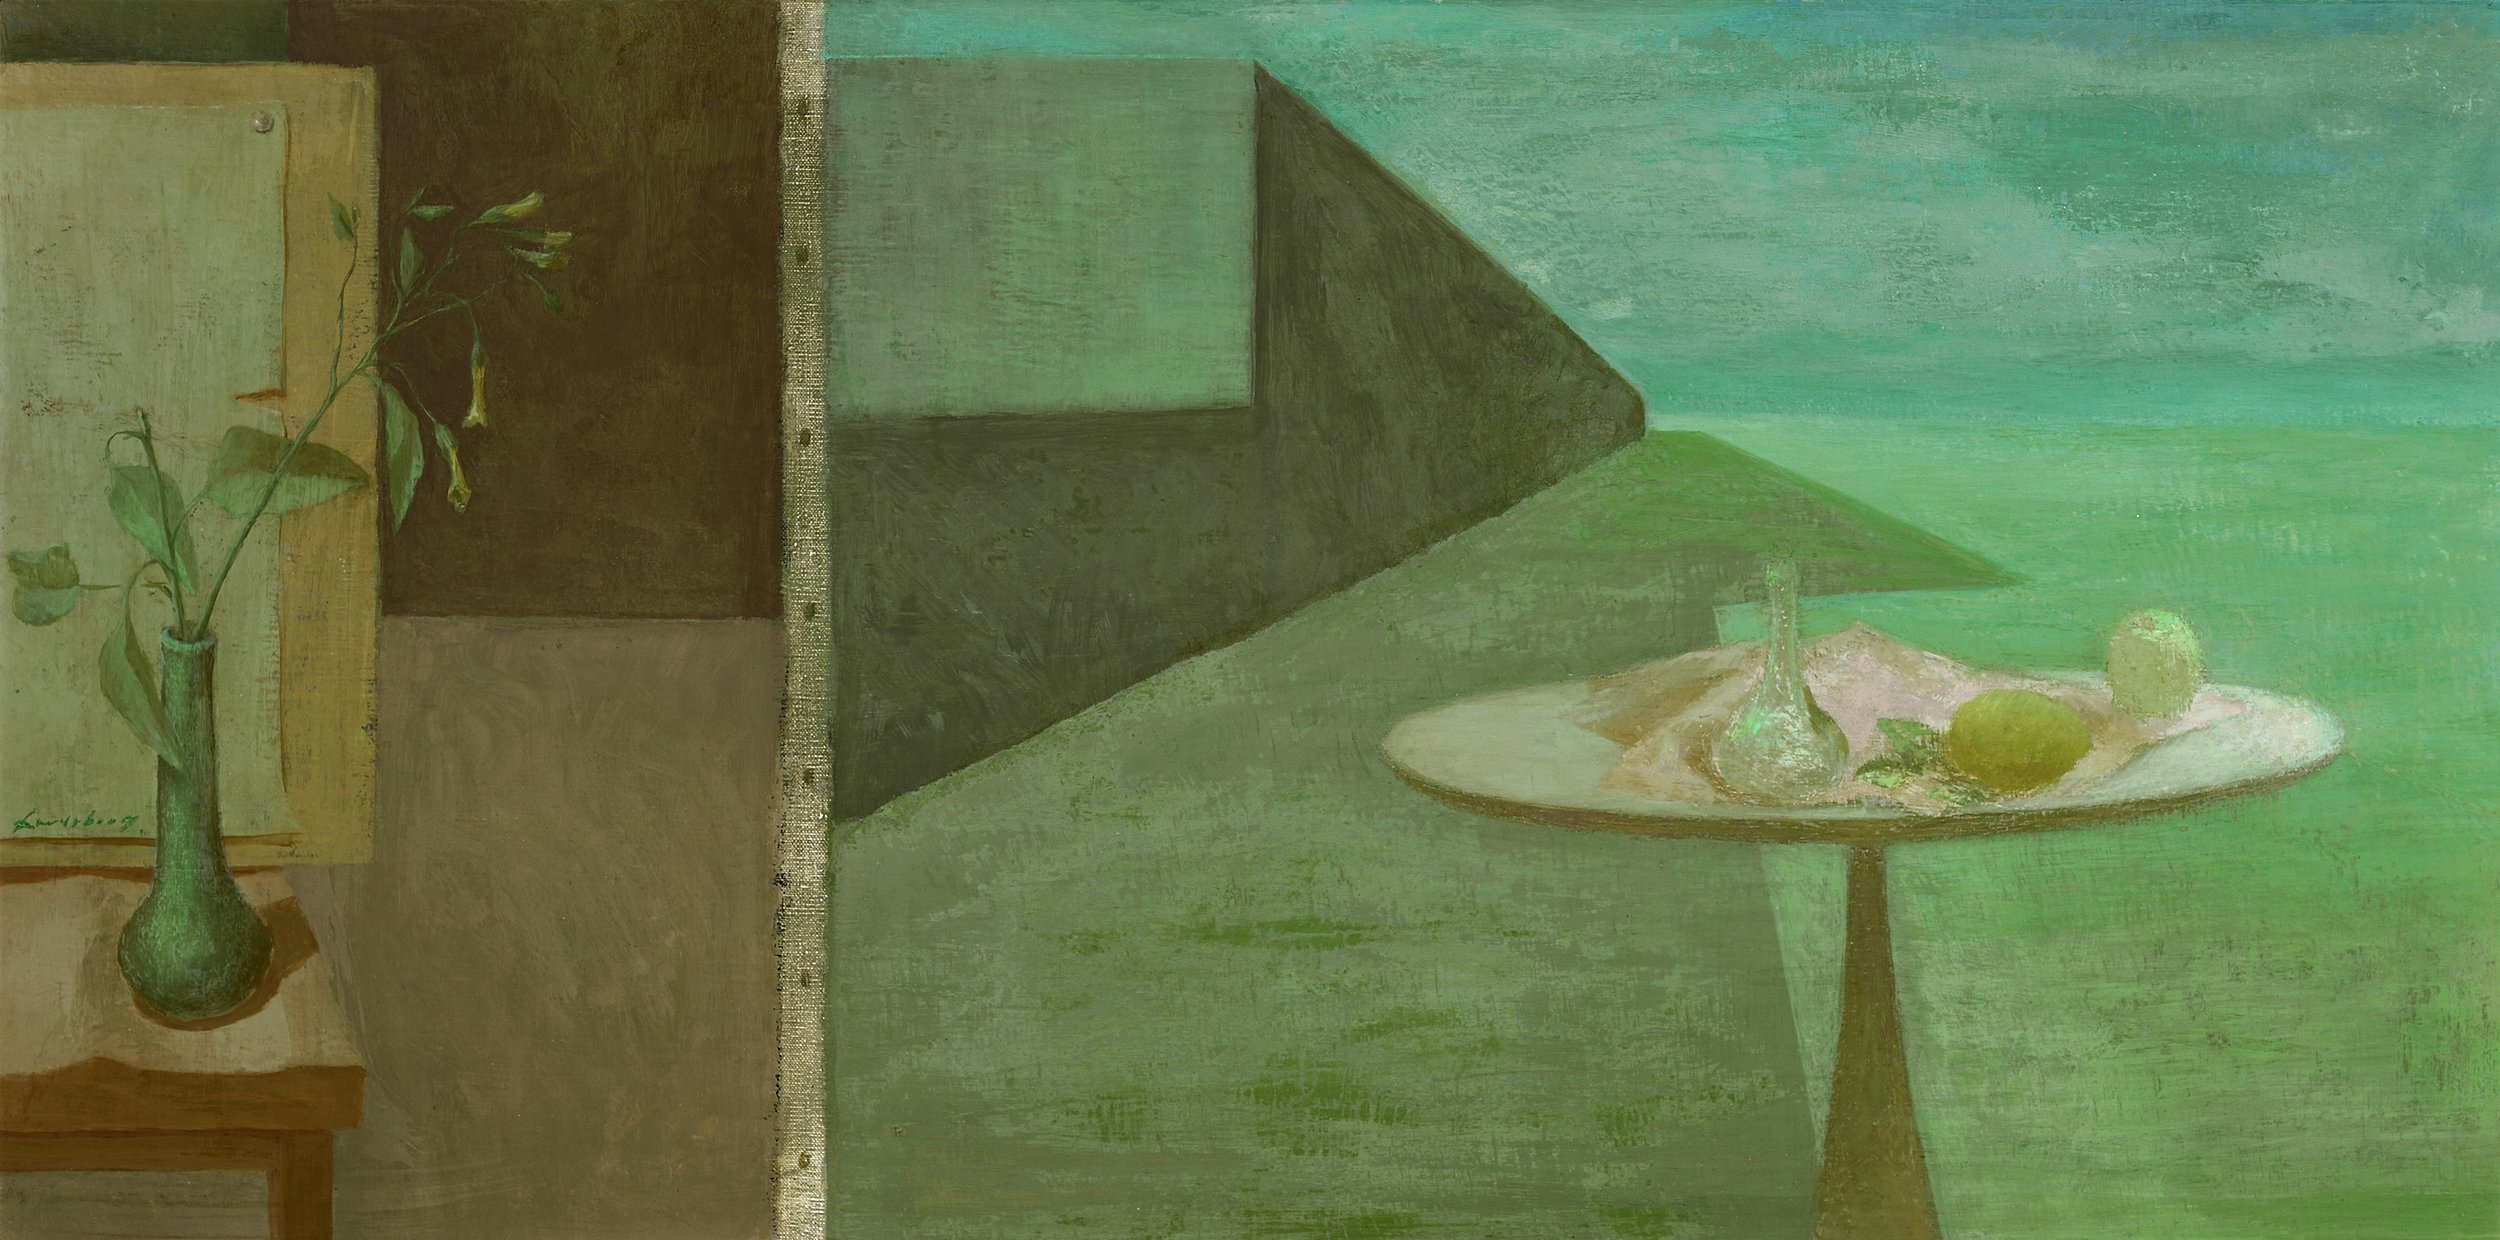 Enigma of Reality , 1955  oil on canvas 20 x 40 inches; 50.8 x 101.6 centimeters  $50,000